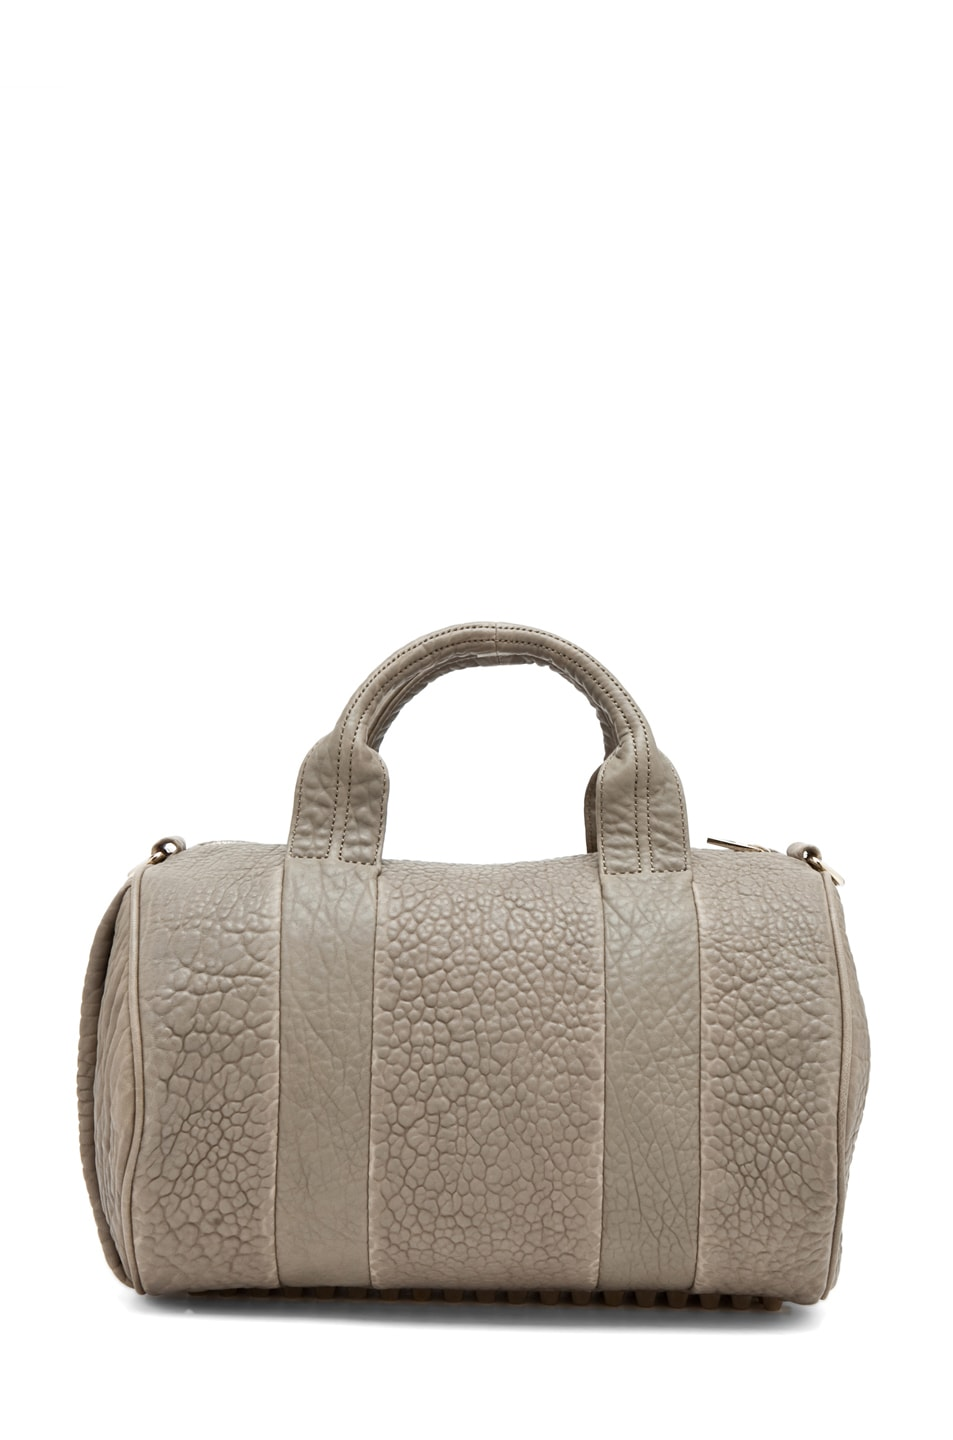 Image 7 of Alexander Wang Rocco Satchel in Granite